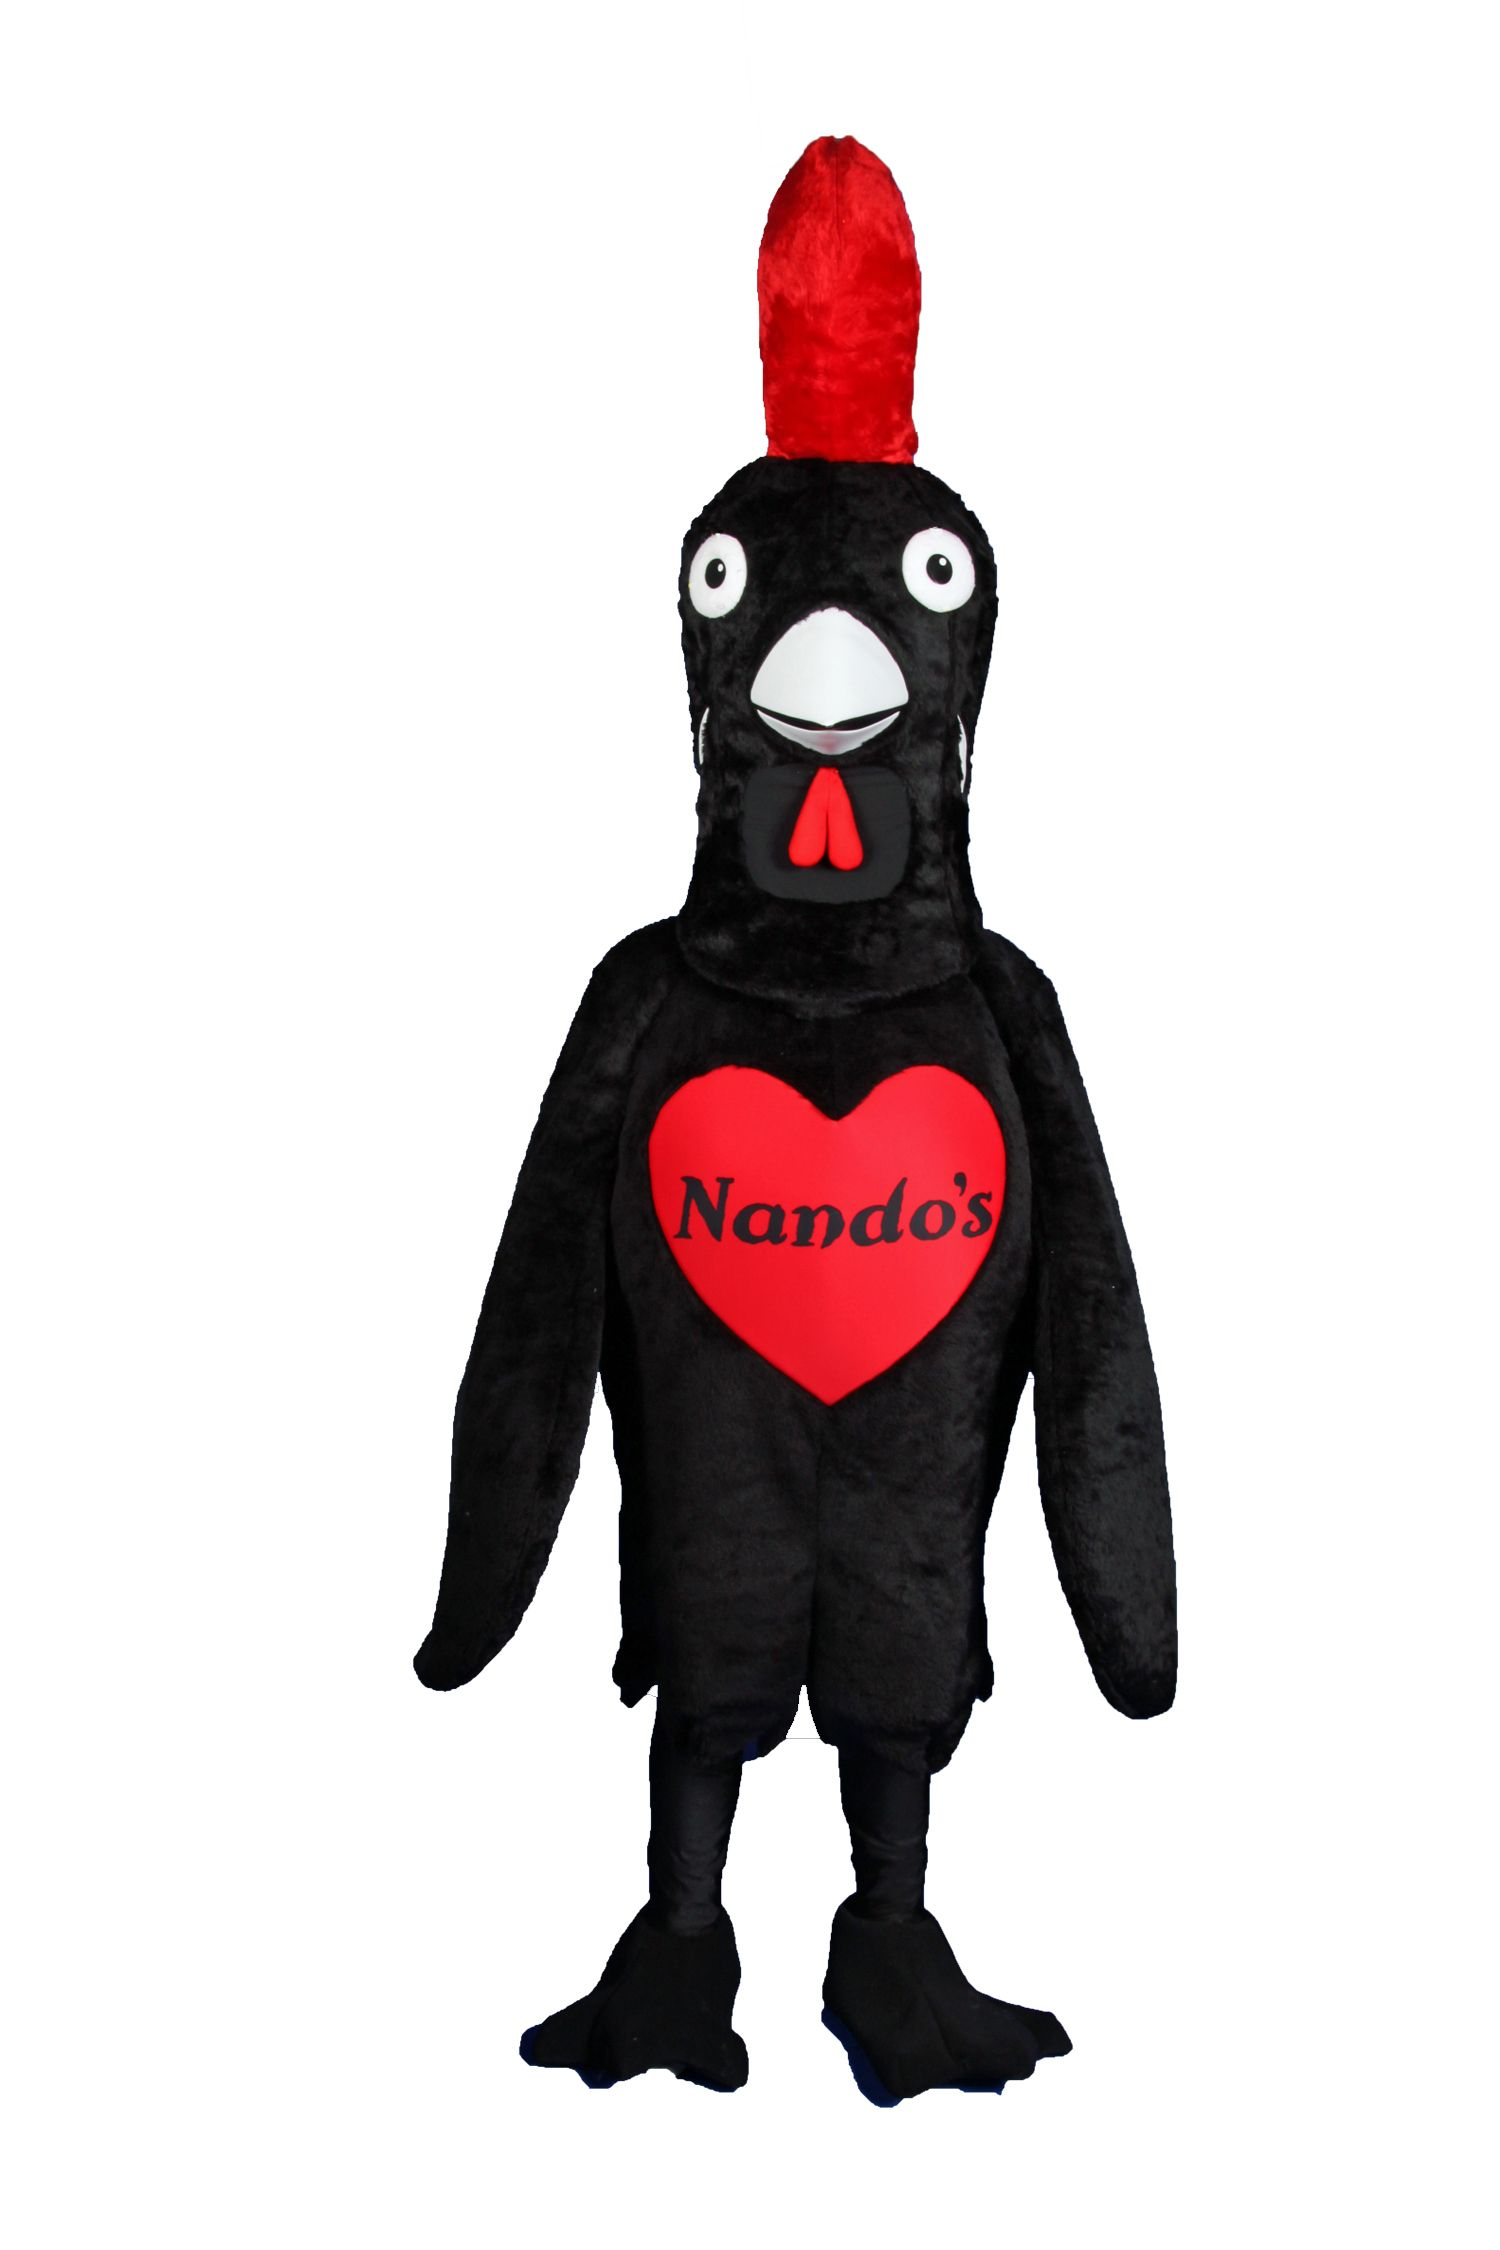 what to wear for nandos interview